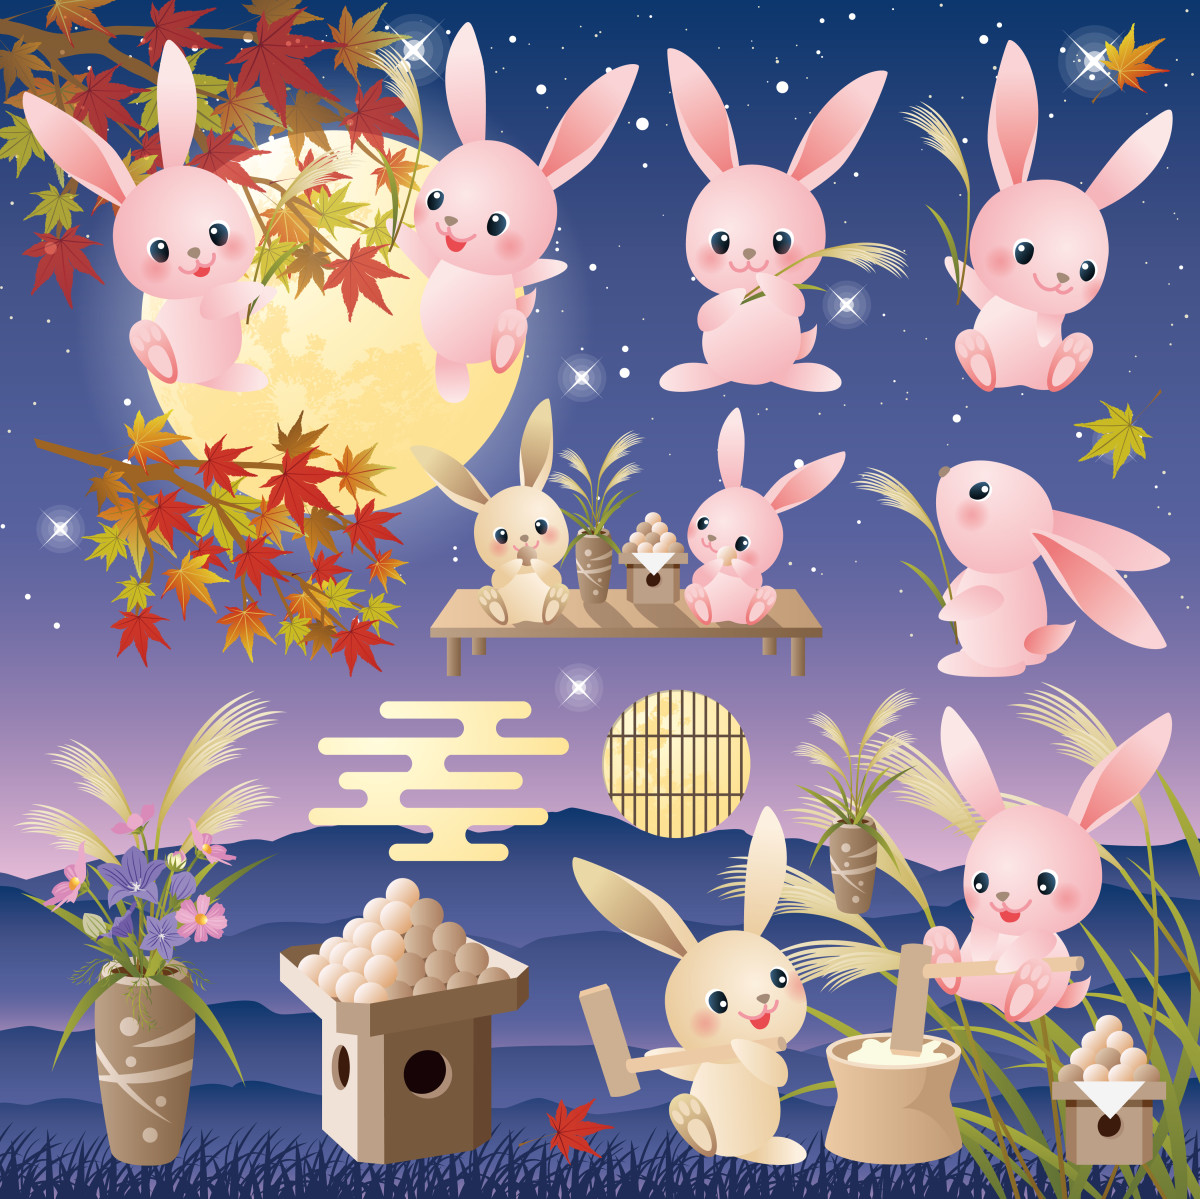 Bunnies performing various otsukimi activities